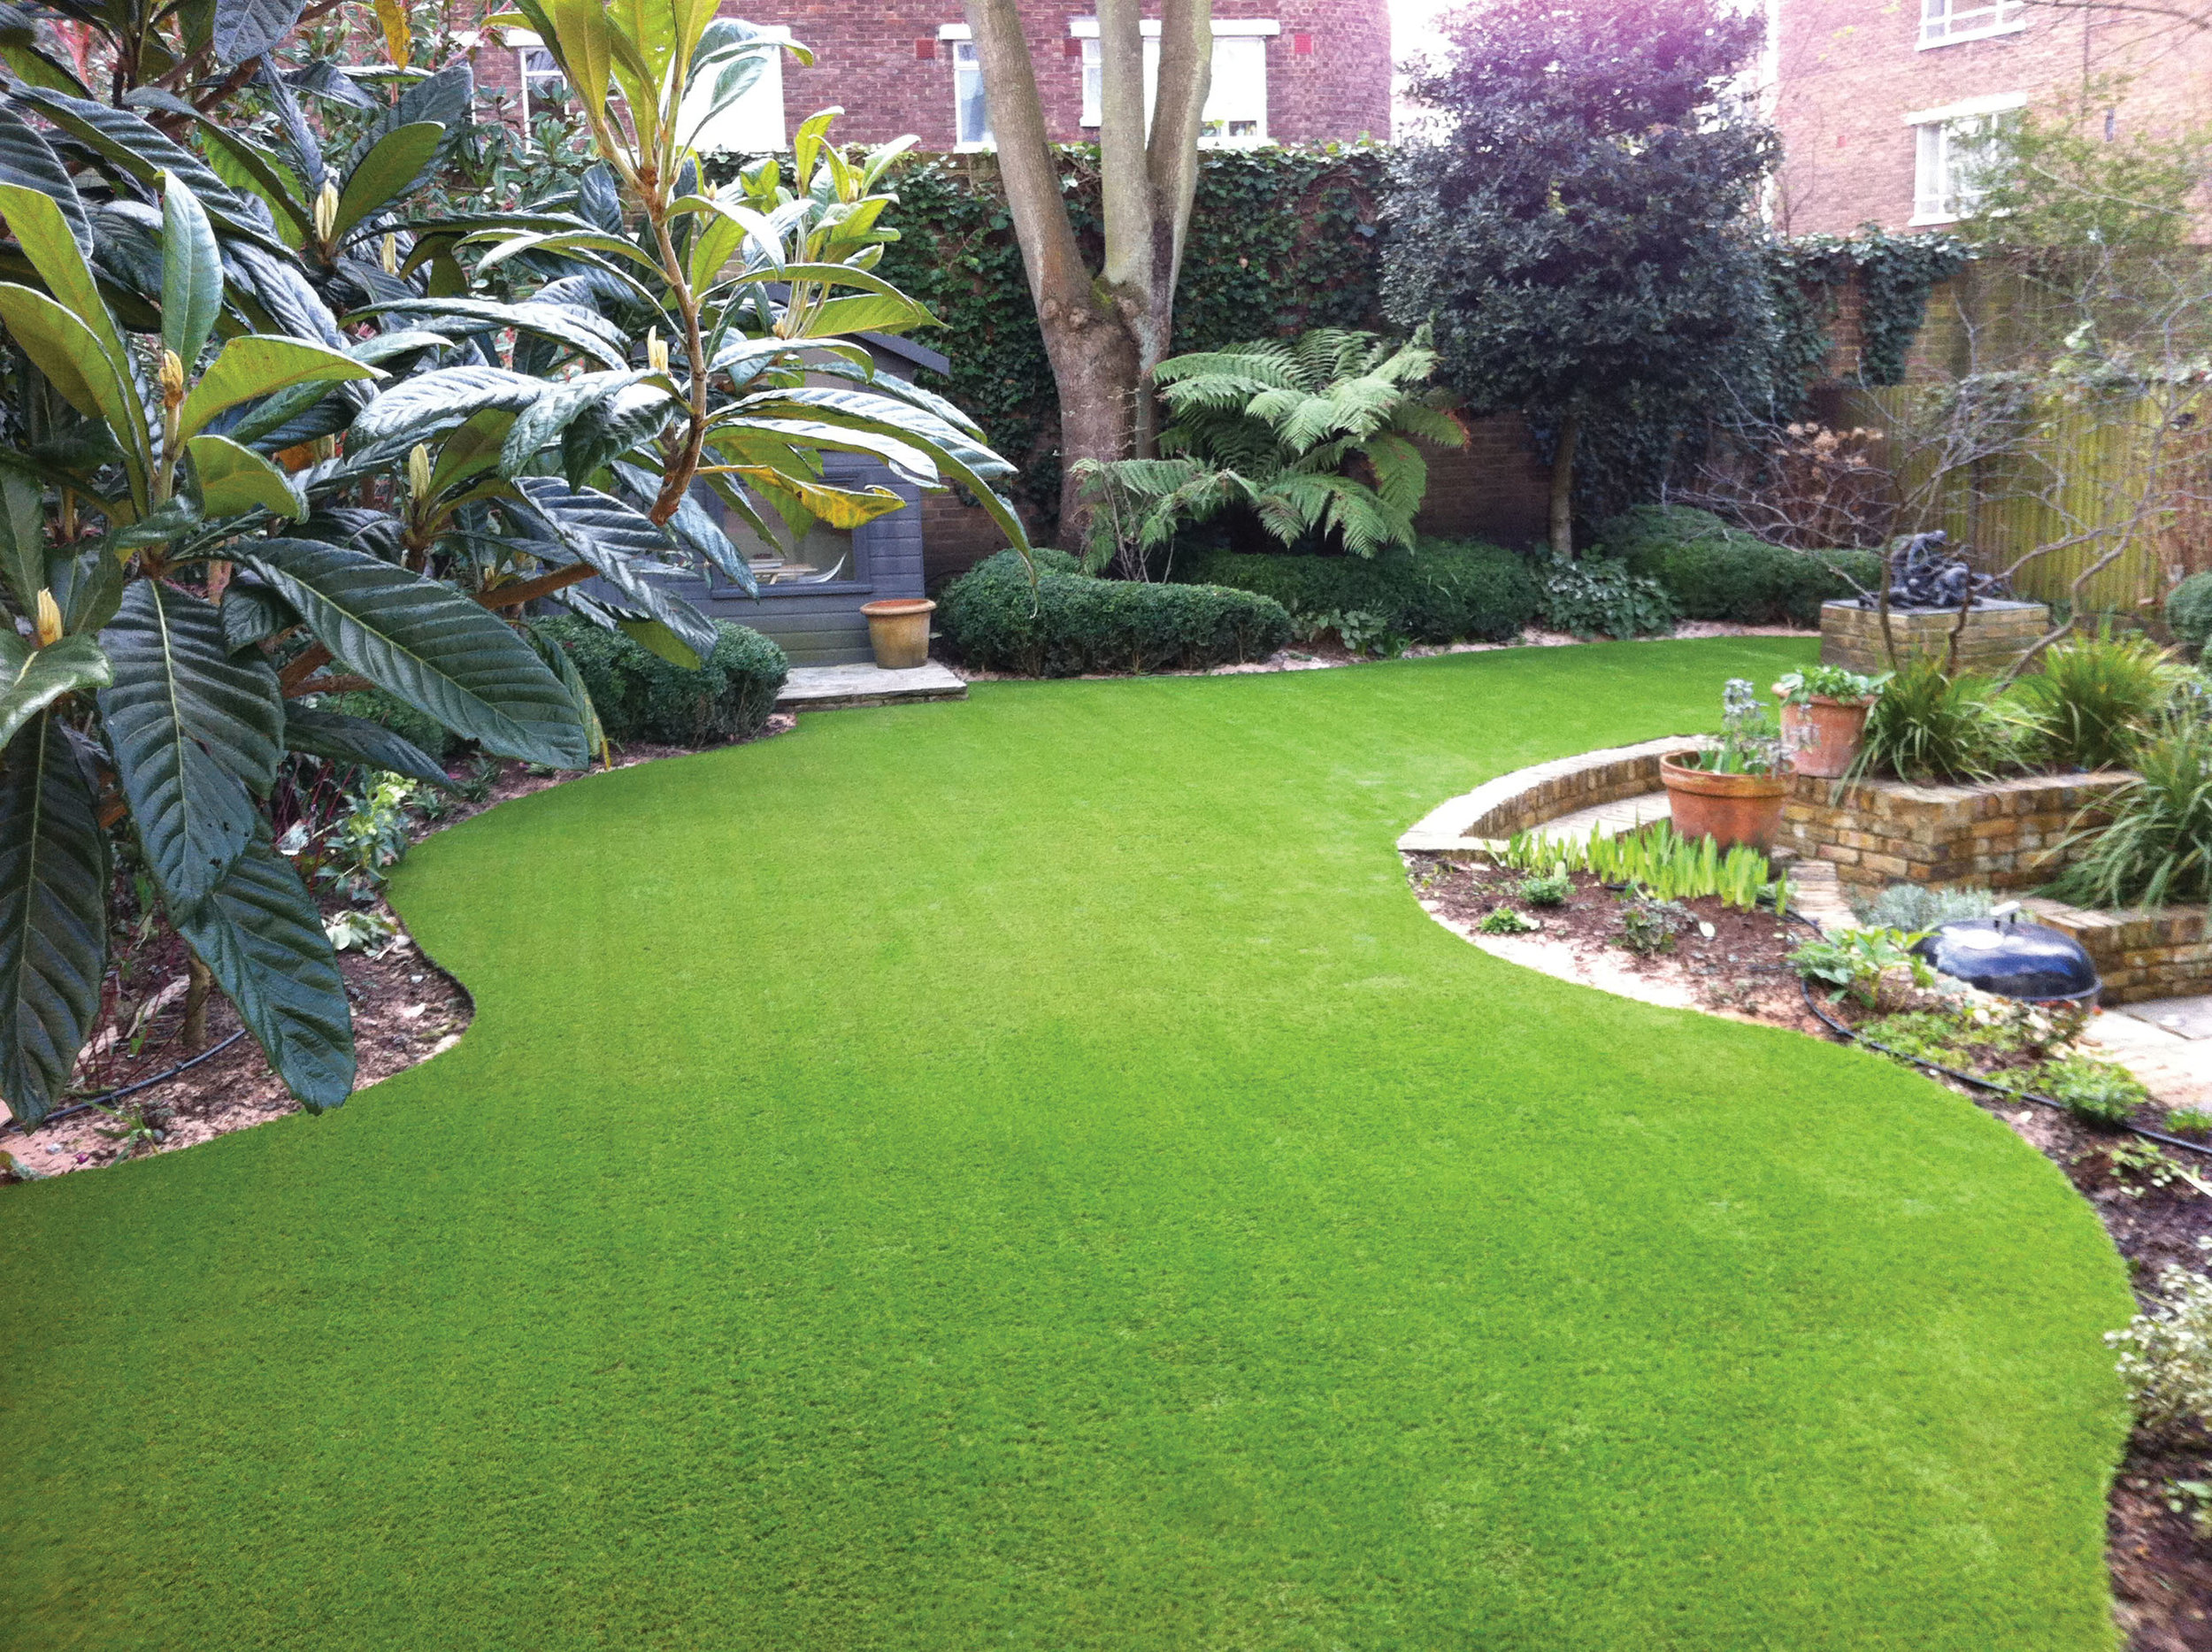 VAN DYCK EASIGRASS | CARPET WORLD FLOORING